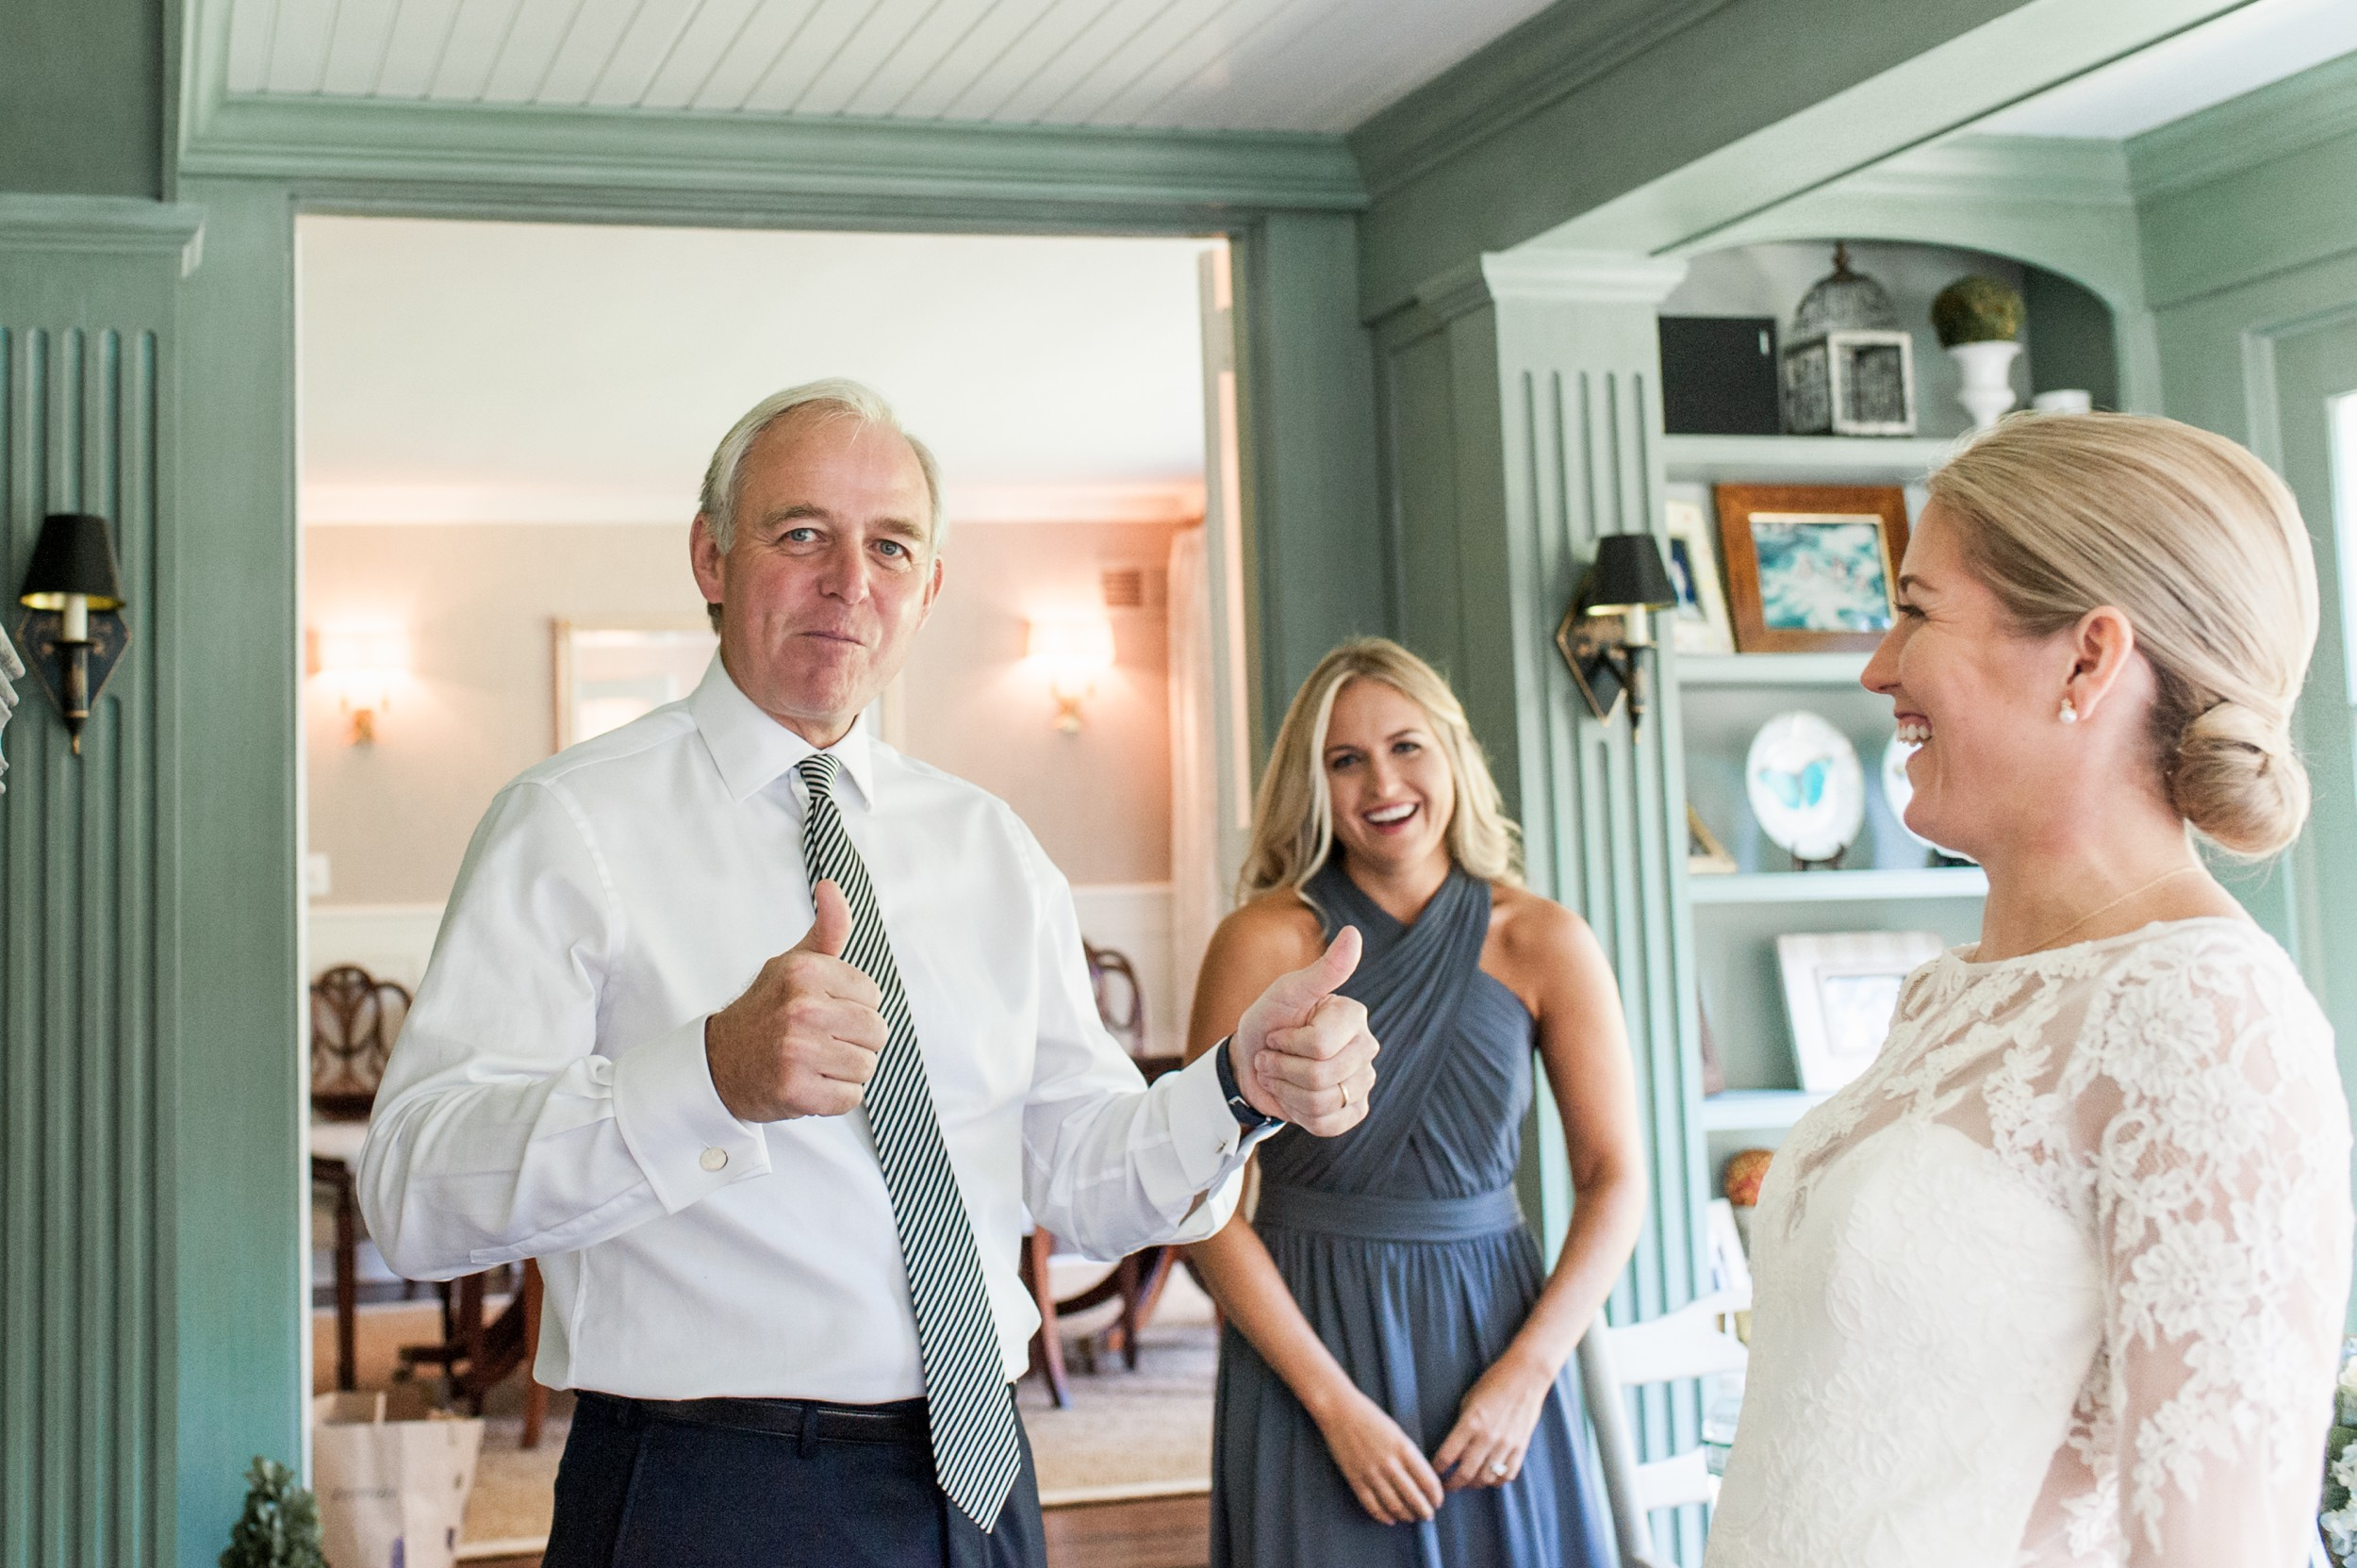 Wee Burn Beach Club Wedding Darien CT bride and dad reveal during getting ready thumbs up